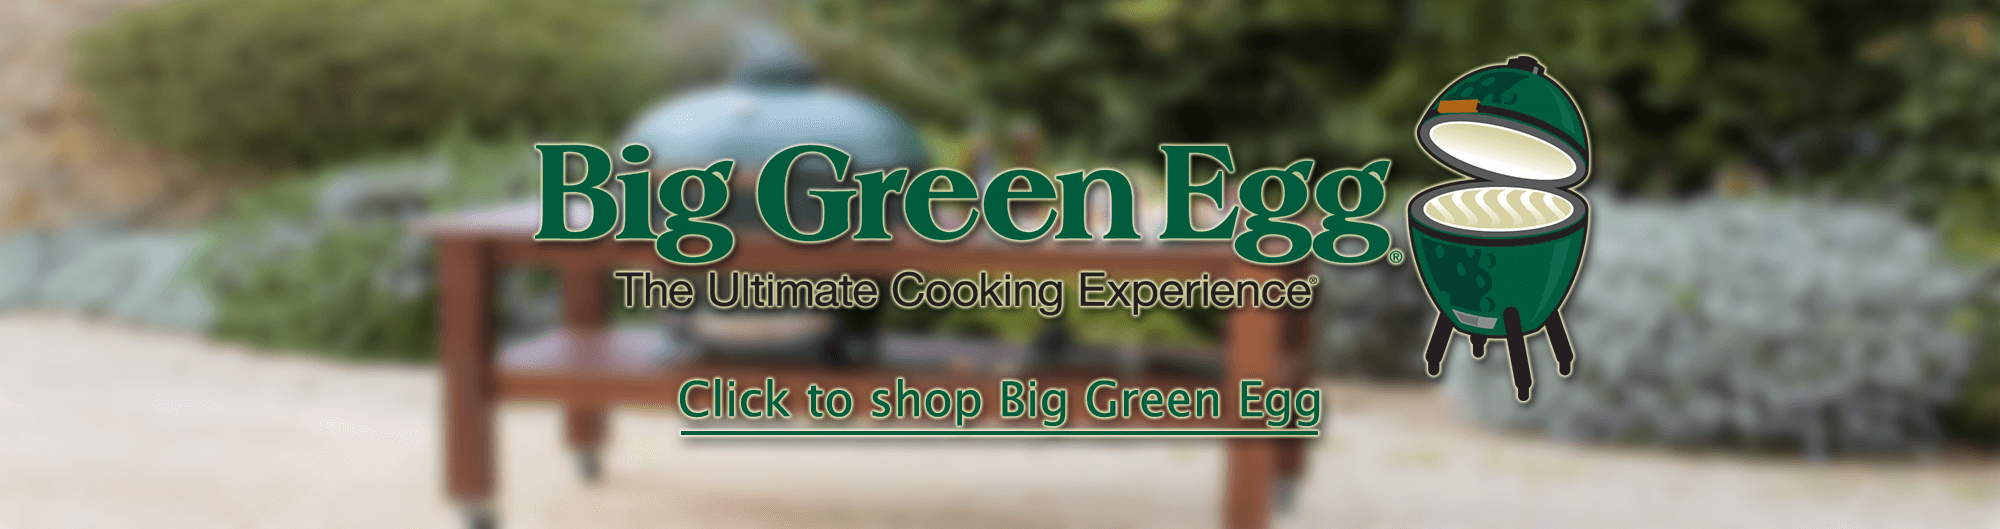 Big Green Egg Charcoal Grills